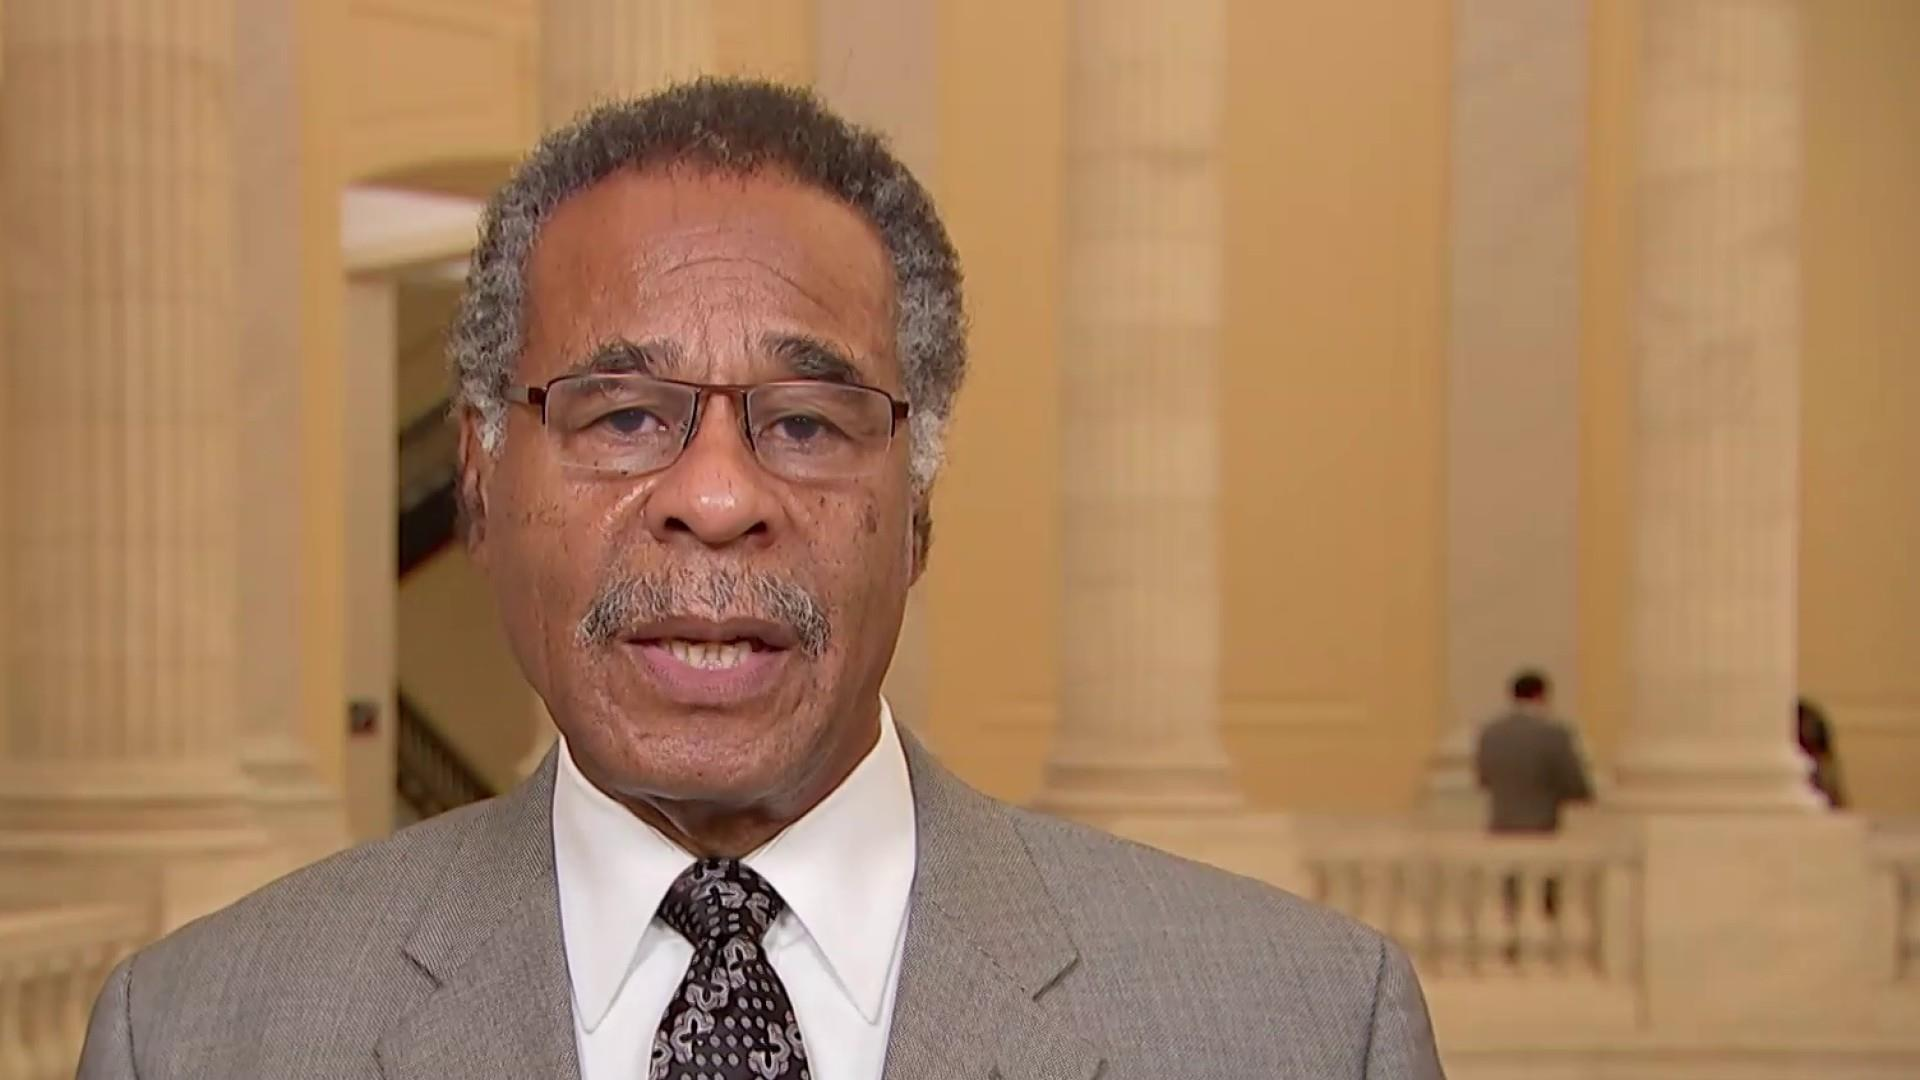 Rep Emanuel Cleaver relects on the life and legacy of Elijah Cummings